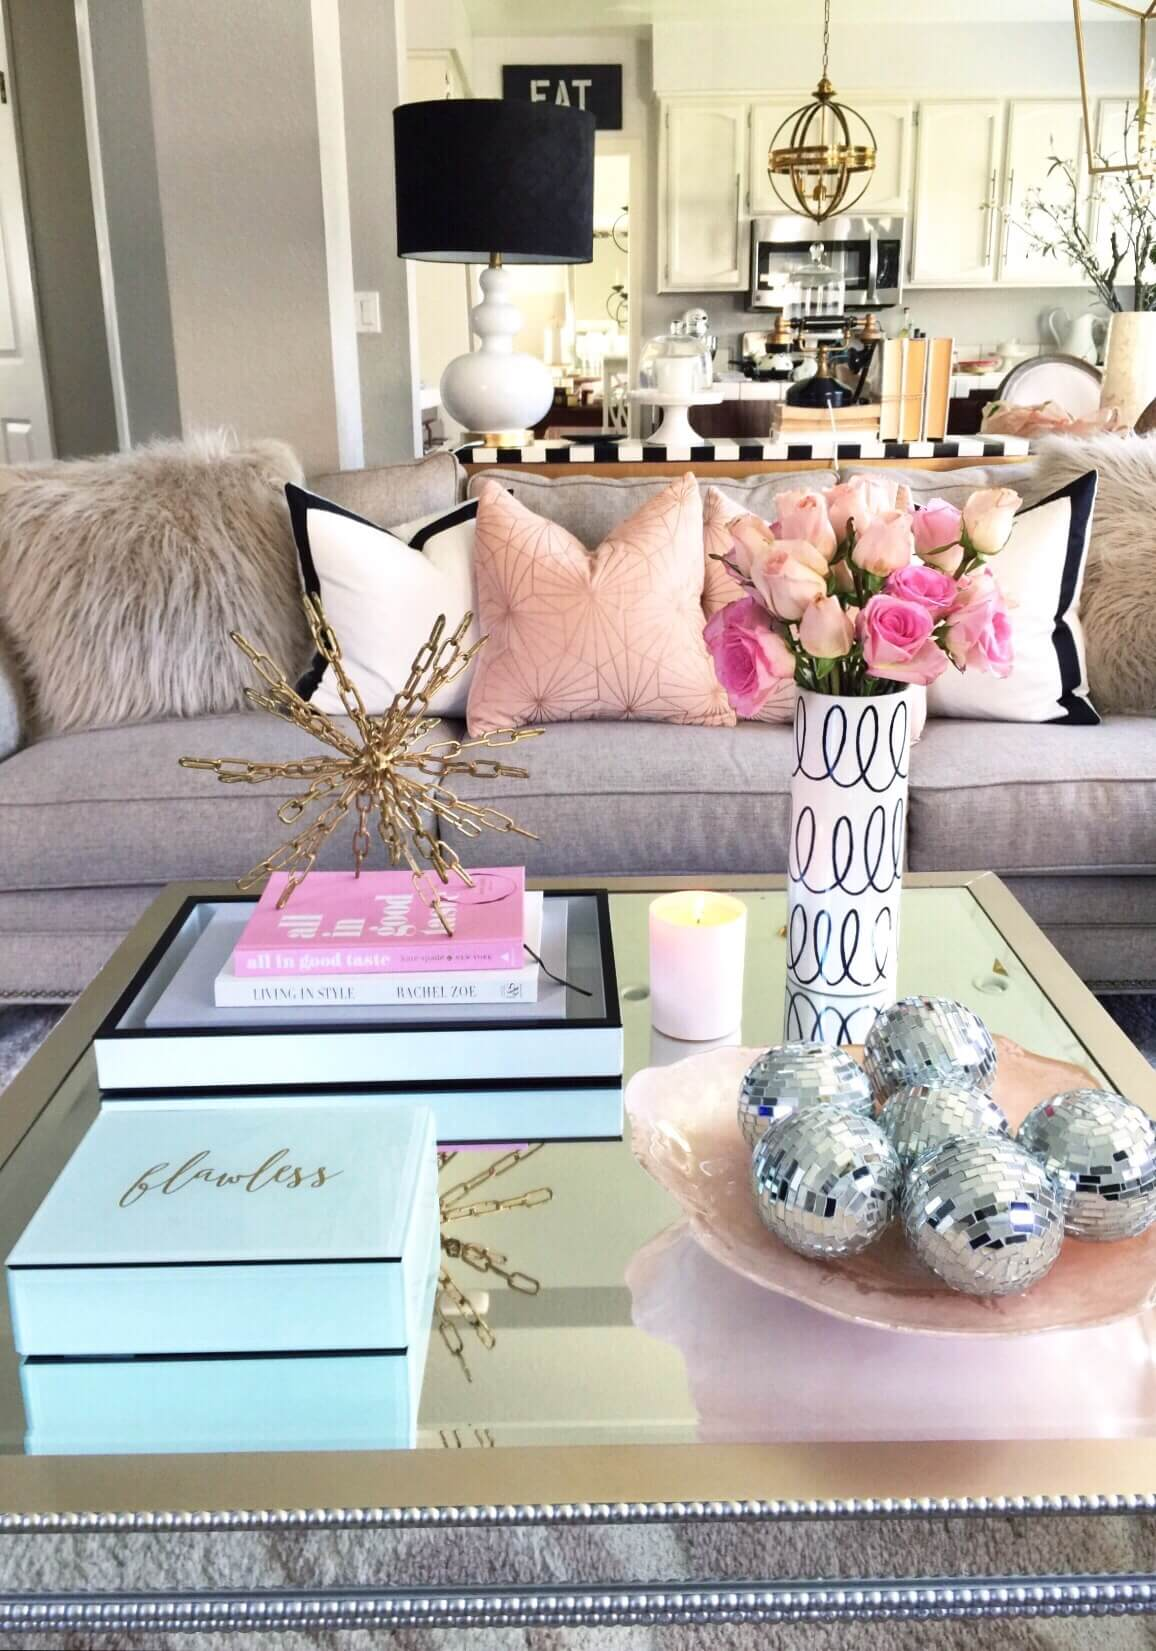 best coffee table decorating ideas and designs for homebnc accents glamorous mirrored with metallic accent art chair covers outdoor furniture small telephone stand wicker arm